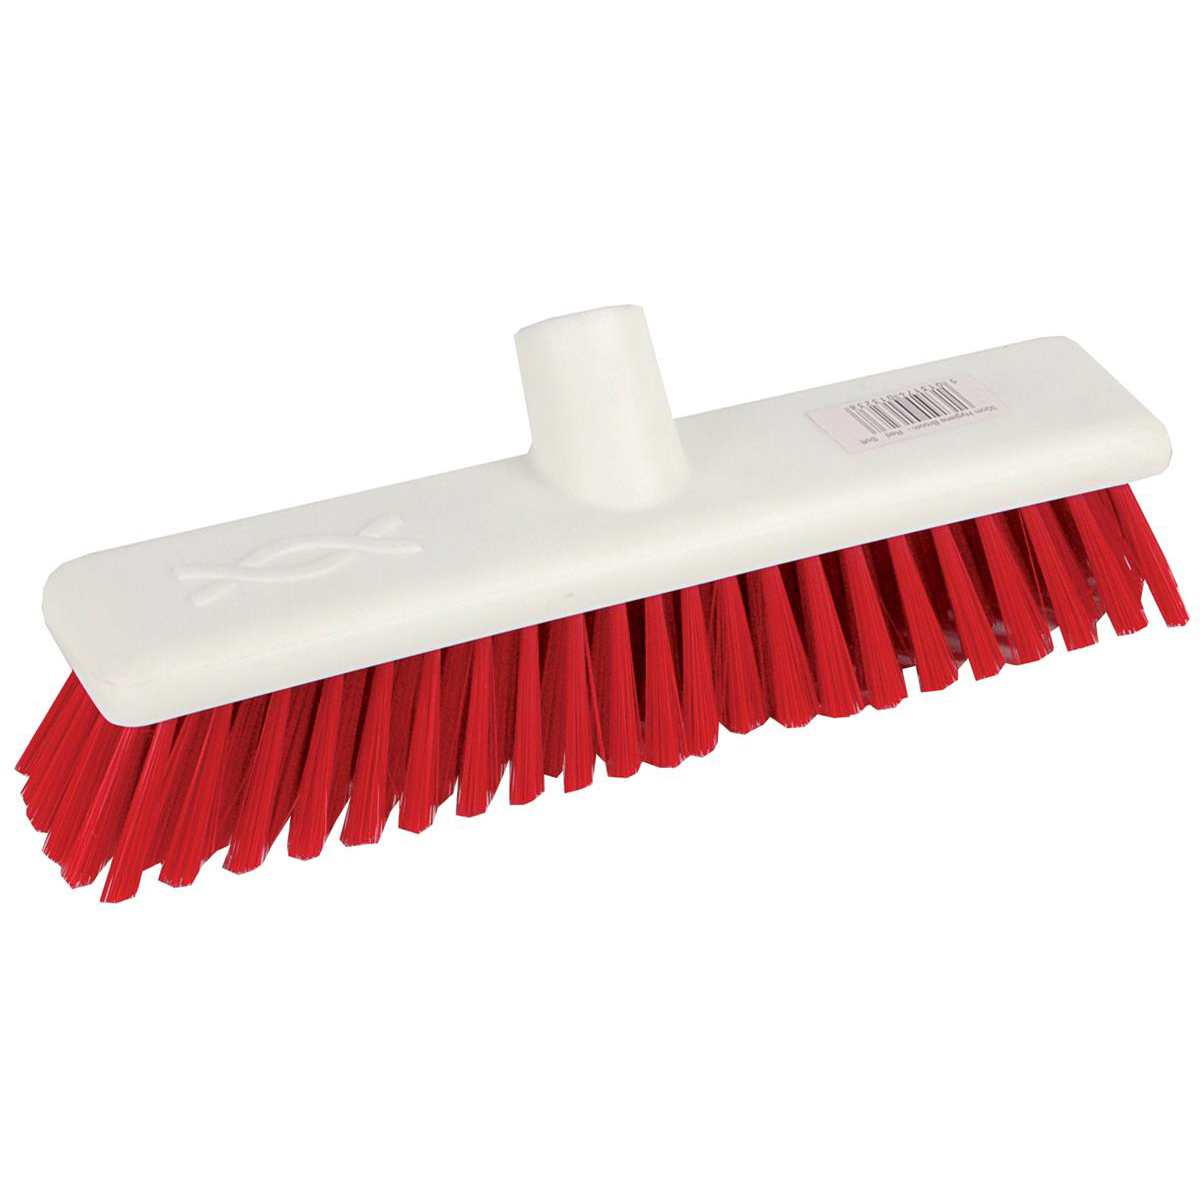 Broom heads Robert Scott & Sons Abbey Hygiene Broom 12inch Washable Soft Broom Head Red Ref BHYRS12SR